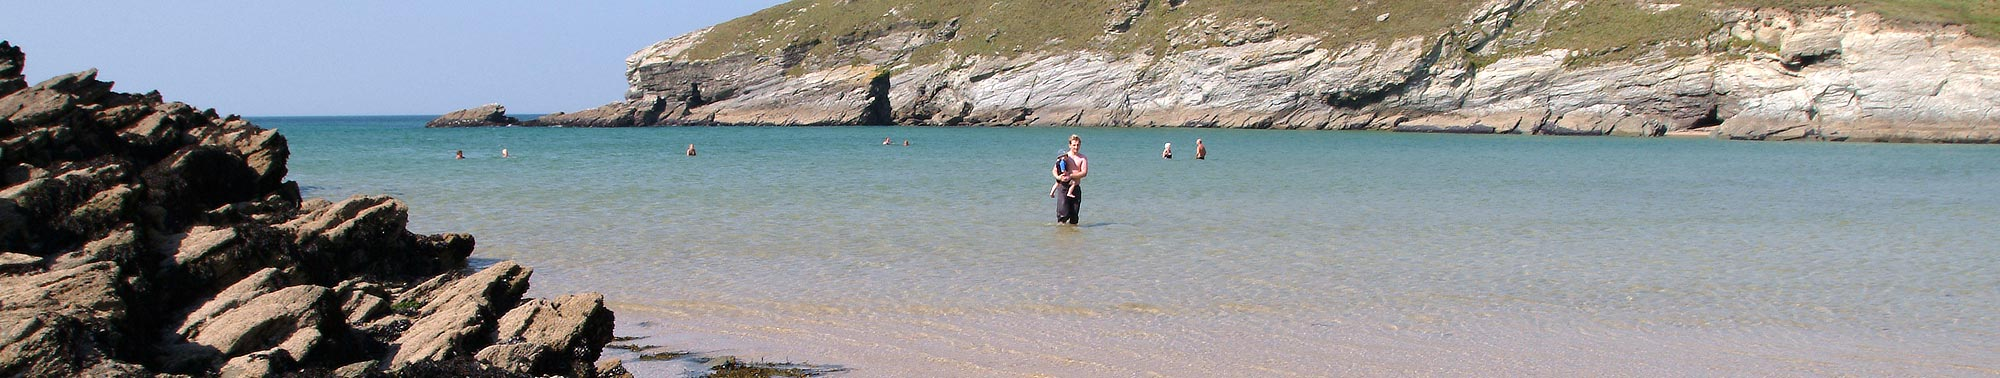 Paddling in the sea at Porth